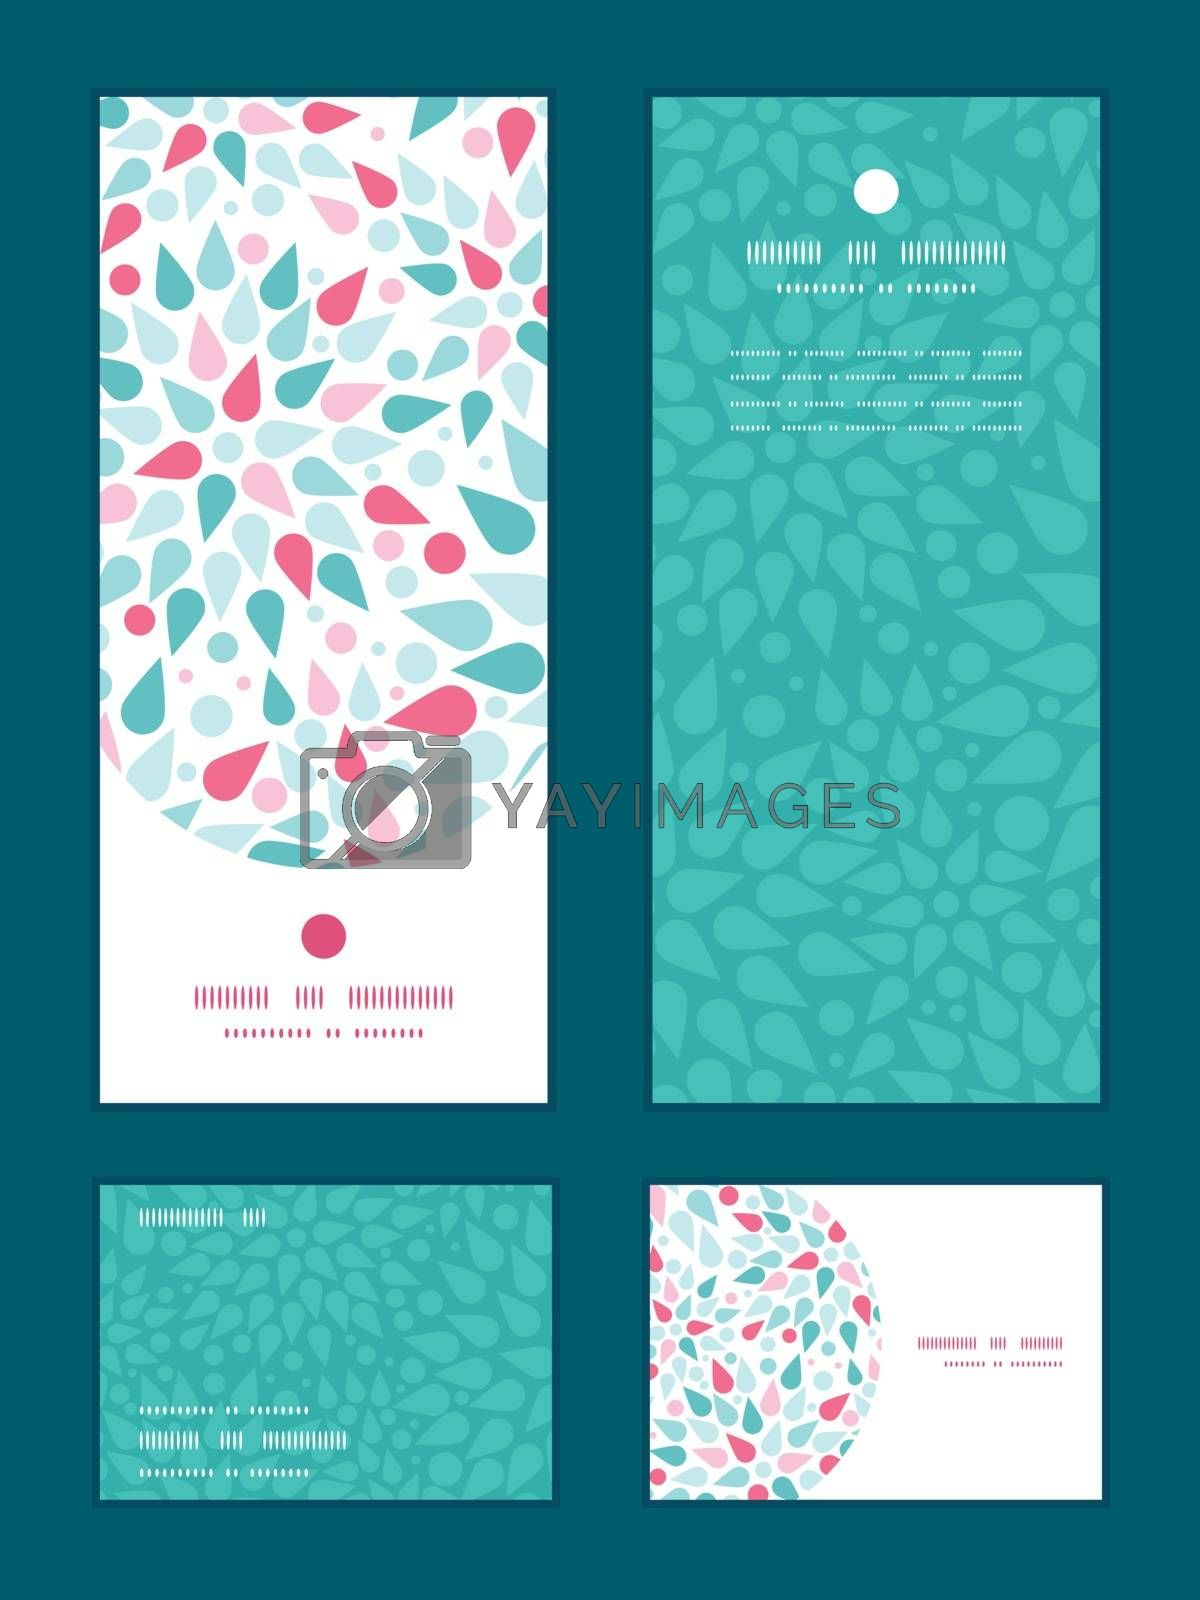 Vector abstract colorful drops vertical frame pattern invitation greeting, RSVP and thank you cards set graphic design